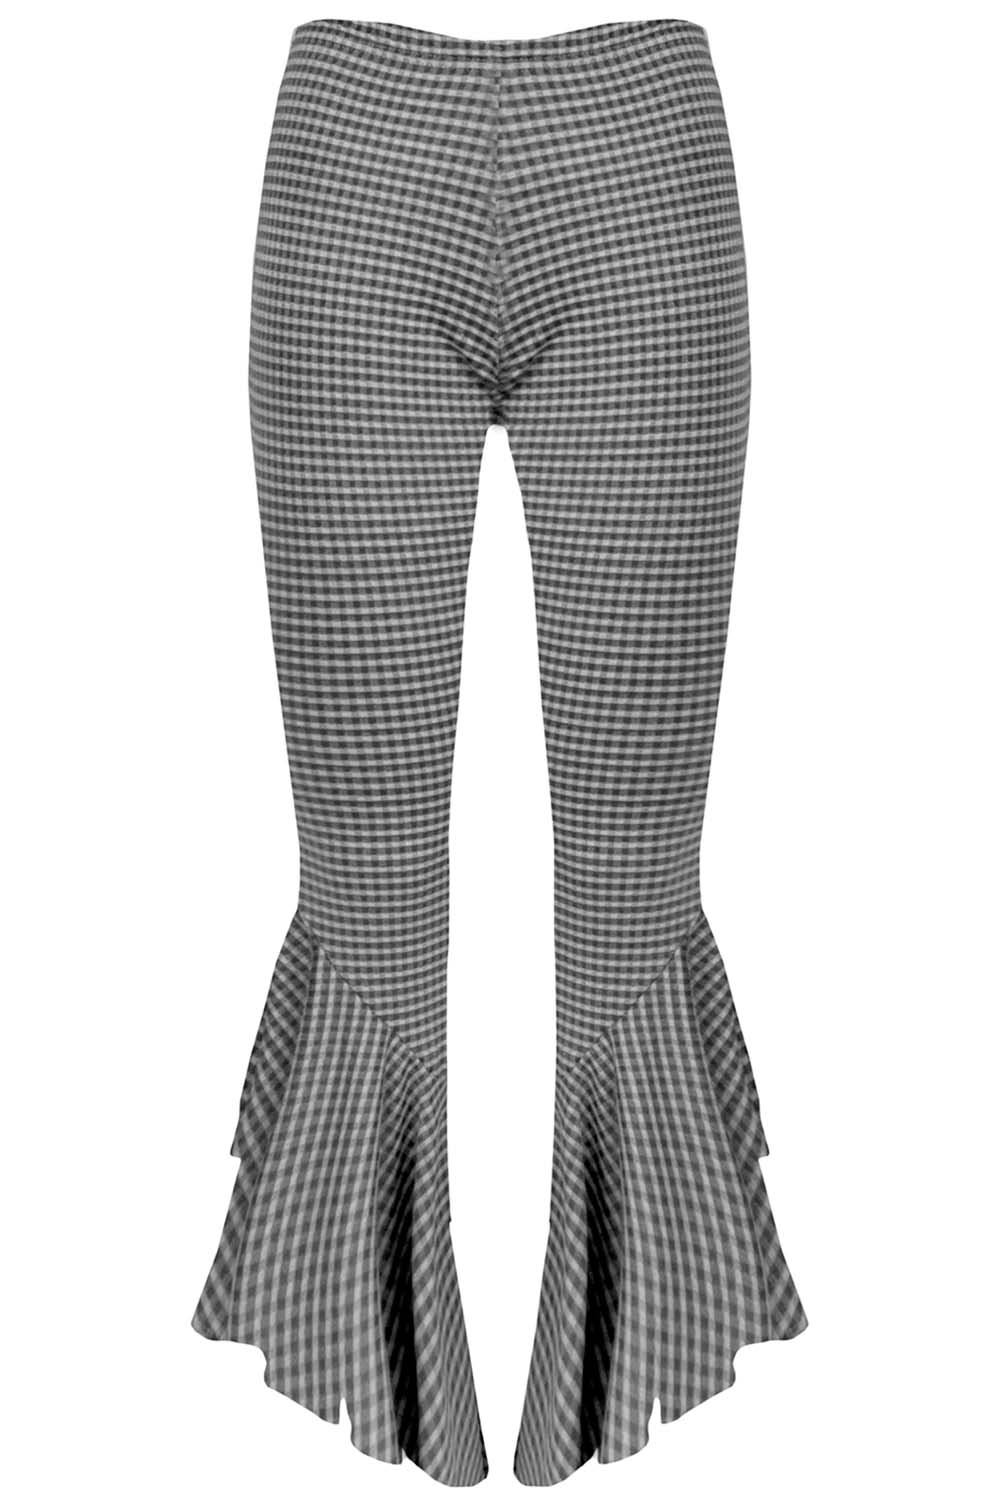 Trousers & Leggings Update your wardrobe with the trousers and leggings of the season. Cigarette trousers and wide-leg trousers come updated in jacquard prints and high waistlines.